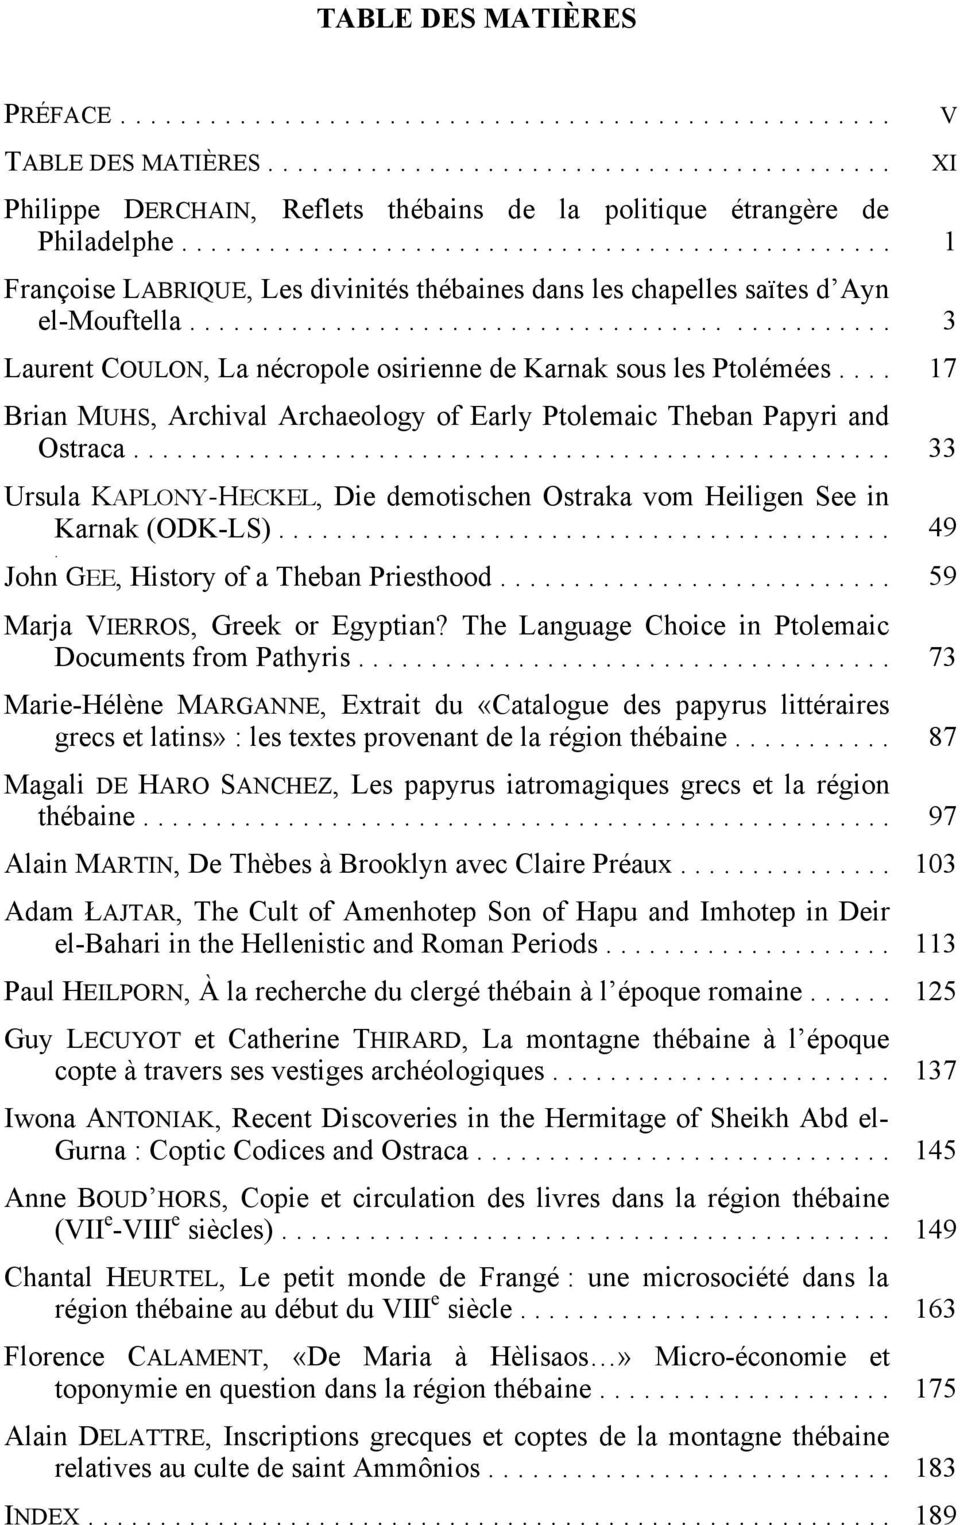 ............................................... 3 Laurent COULON, La nécropole osirienne de Karnak sous les Ptolémées.... 17 Brian MUHS, Archival Archaeology of Early Ptolemaic Theban Papyri and Ostraca.